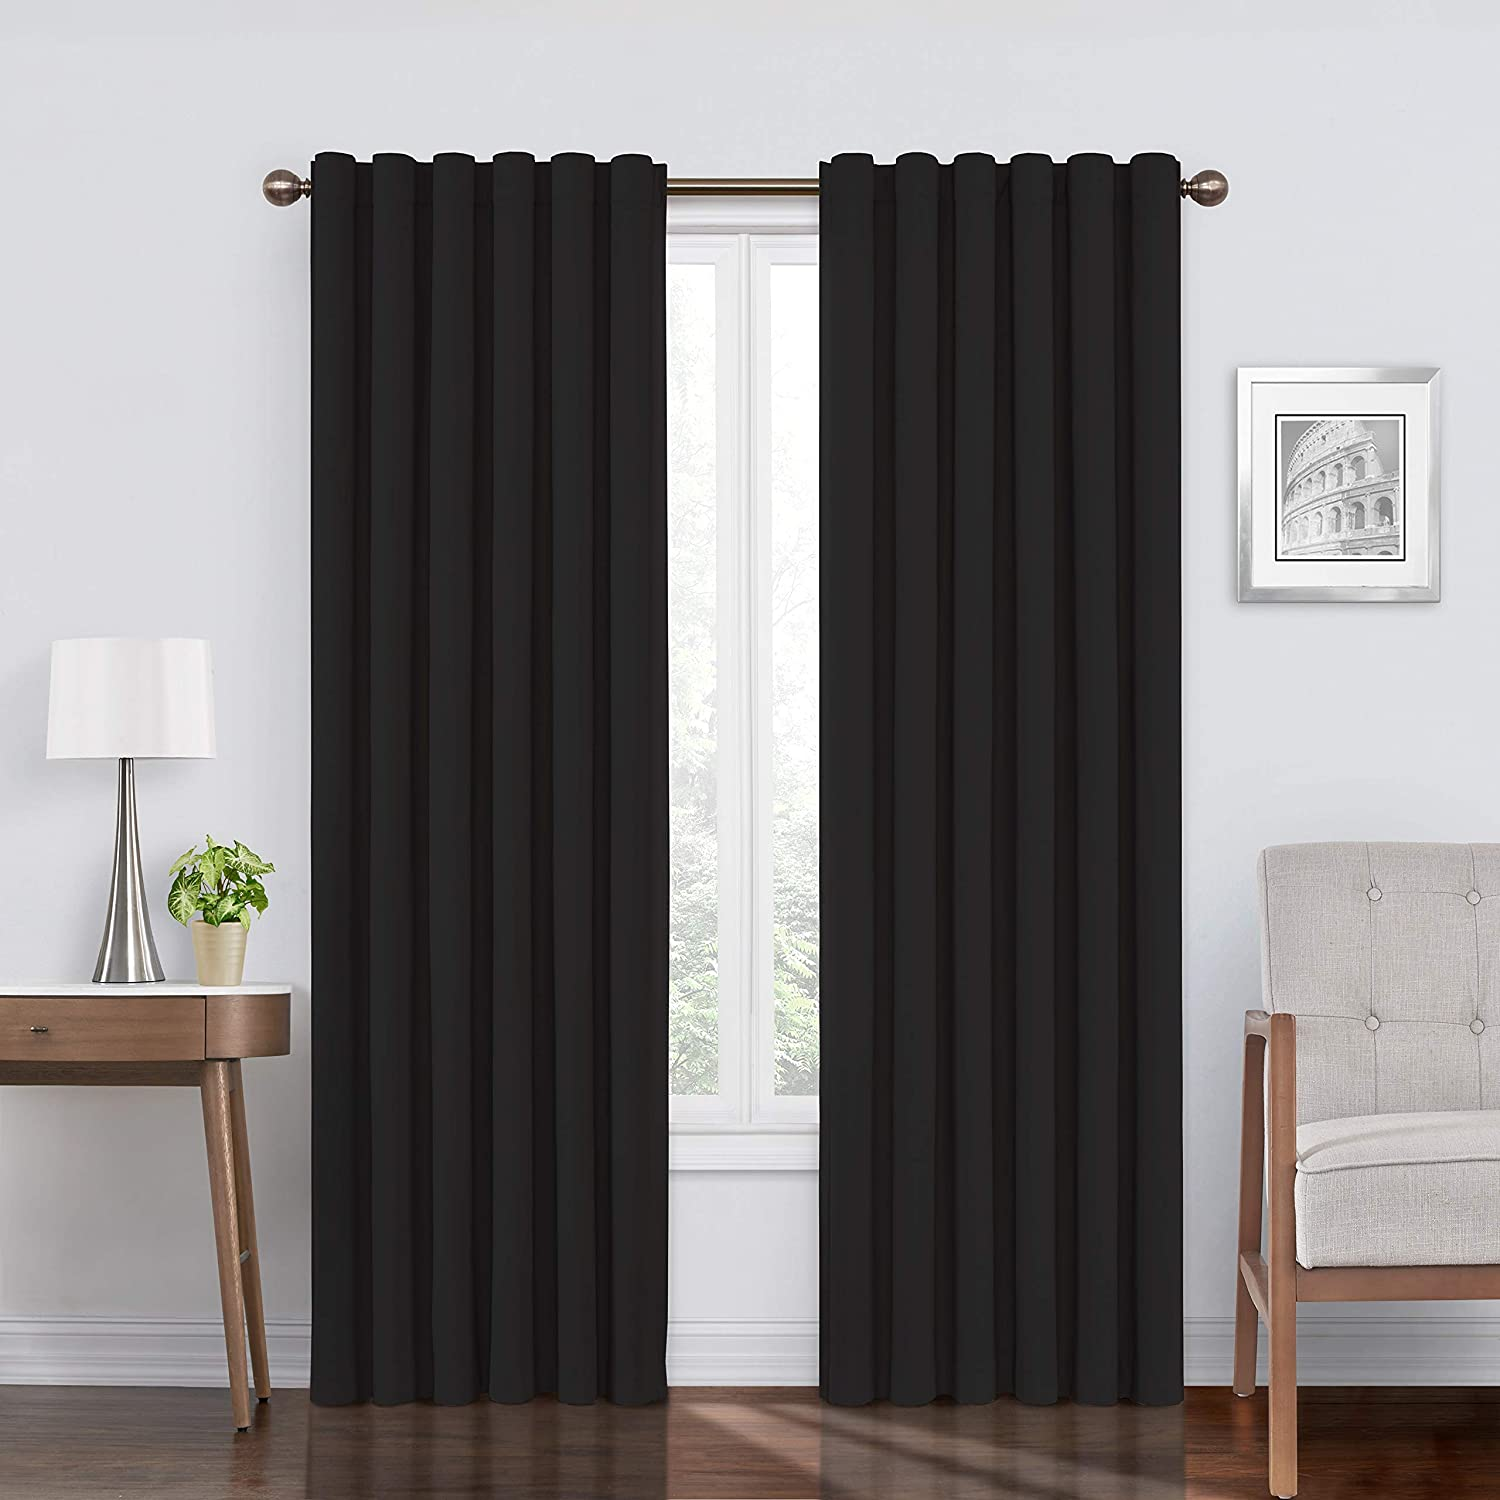 ECLIPSE Bradley Thermal Insulated Curtains